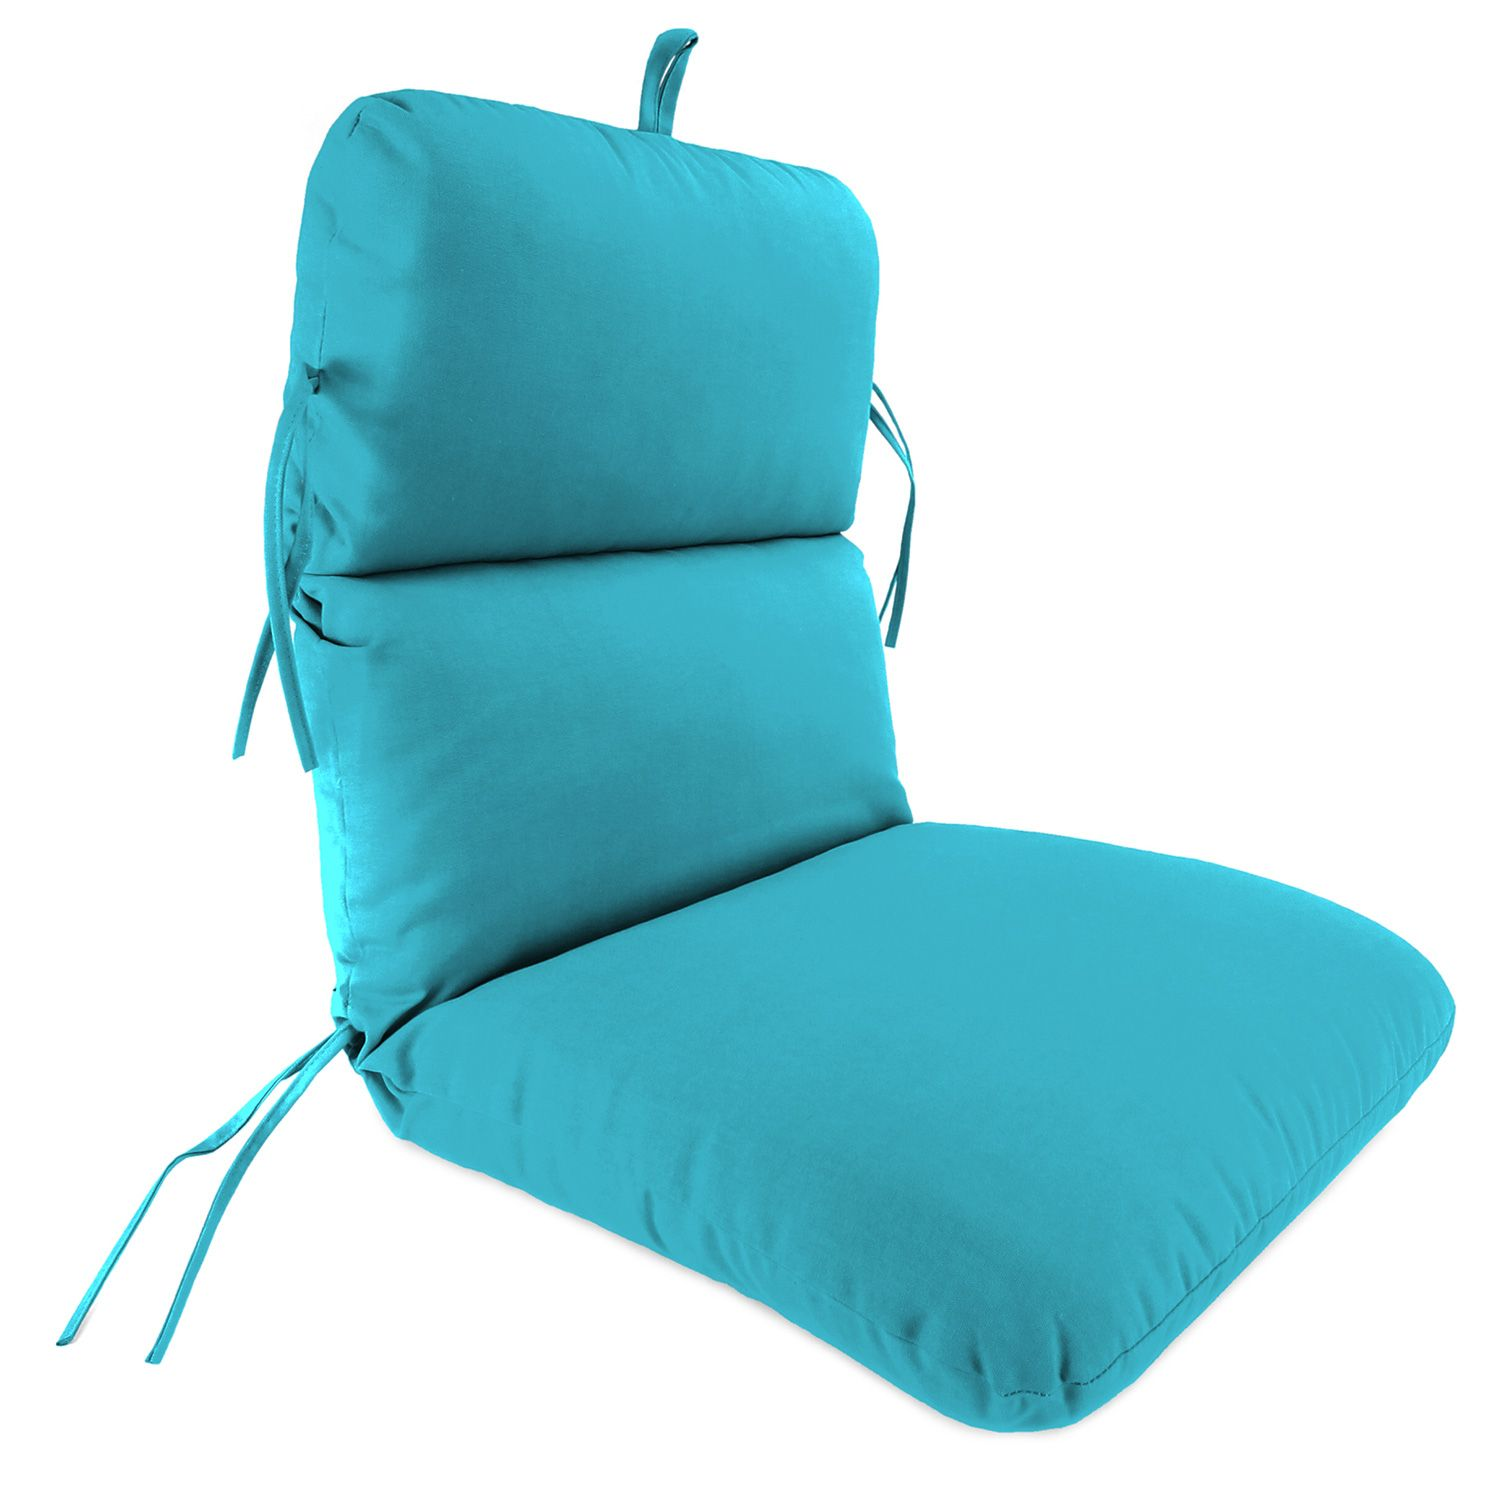 Sunbrella Seat Cushions | Outdoor Seat Cushions Sunbrella | Sunbrella Pillows Clearance